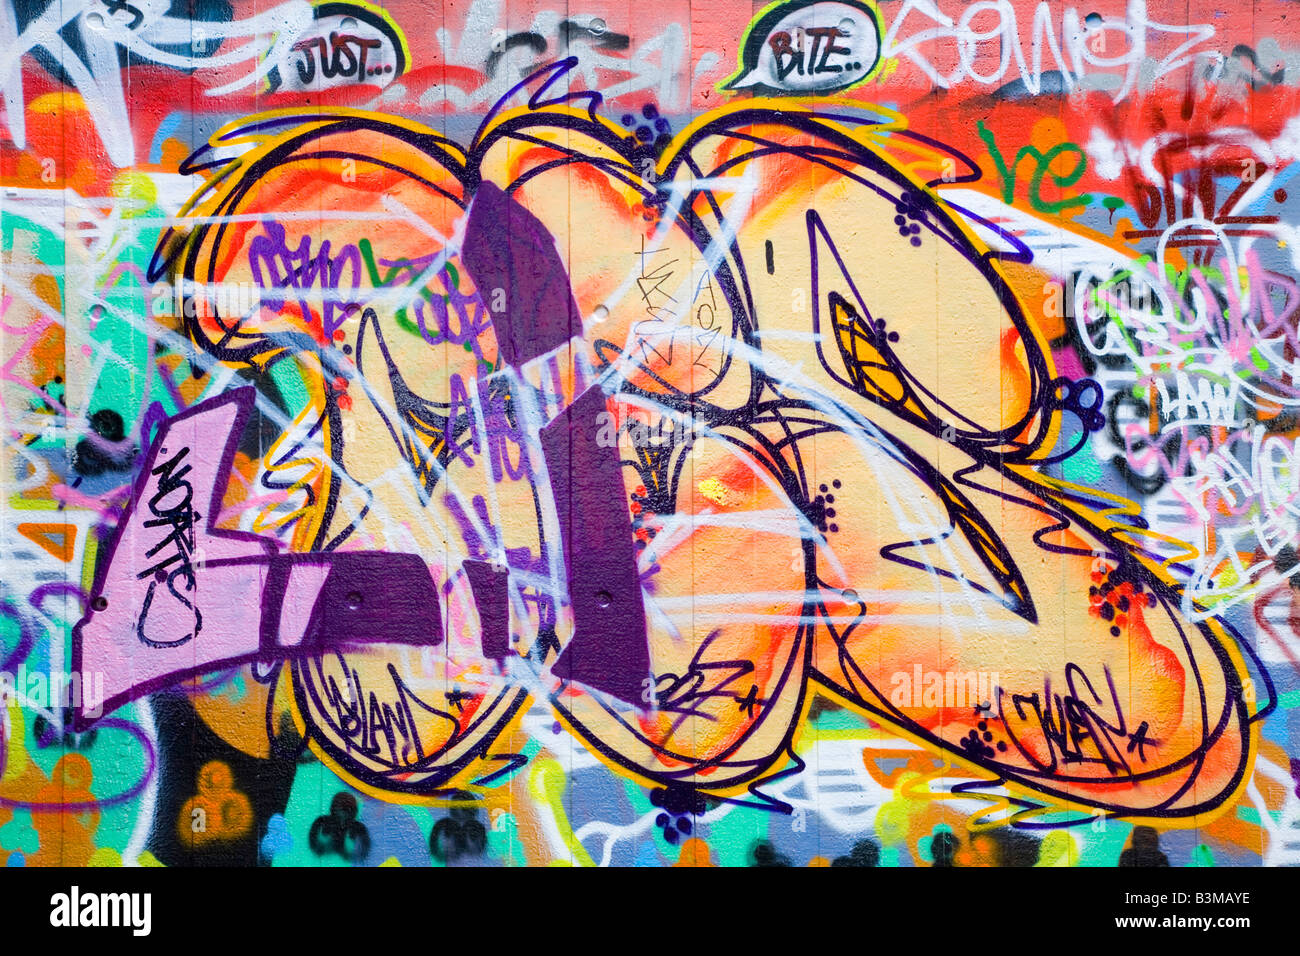 Graffiti or tag on a wall ideal for an urban theme - Stock Image